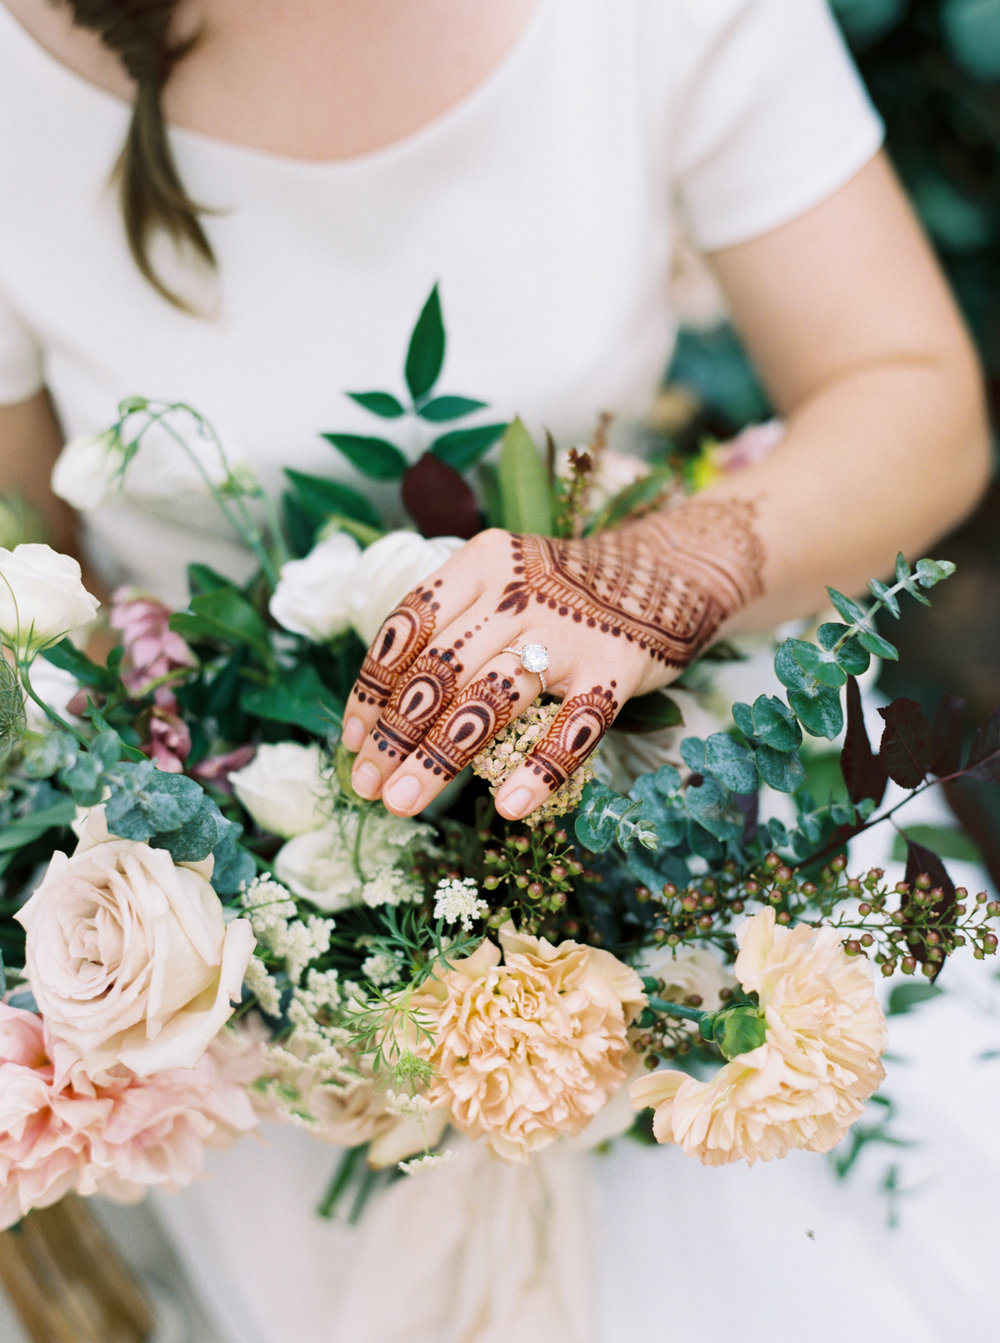 Wahoo_Grill_Atlanta_Indian_Wedding_Abigail_Malone_Photgoraphy_FIlm-29.jpg